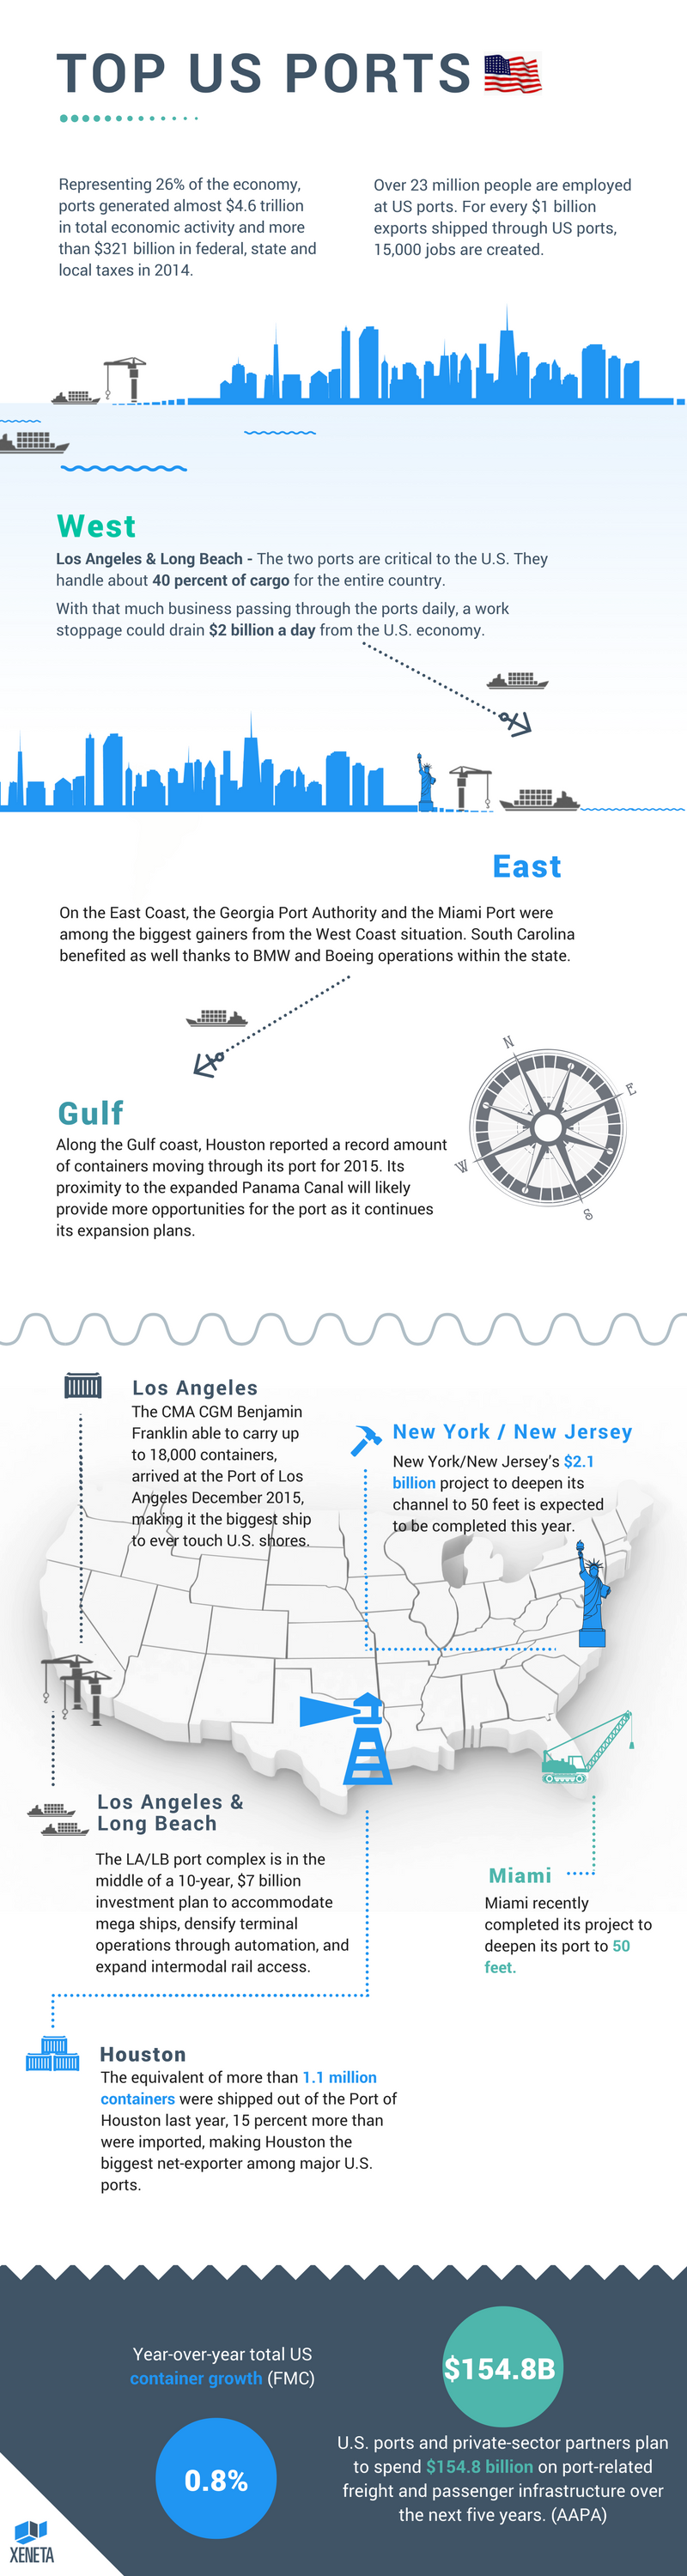 US_ports_infographic.png